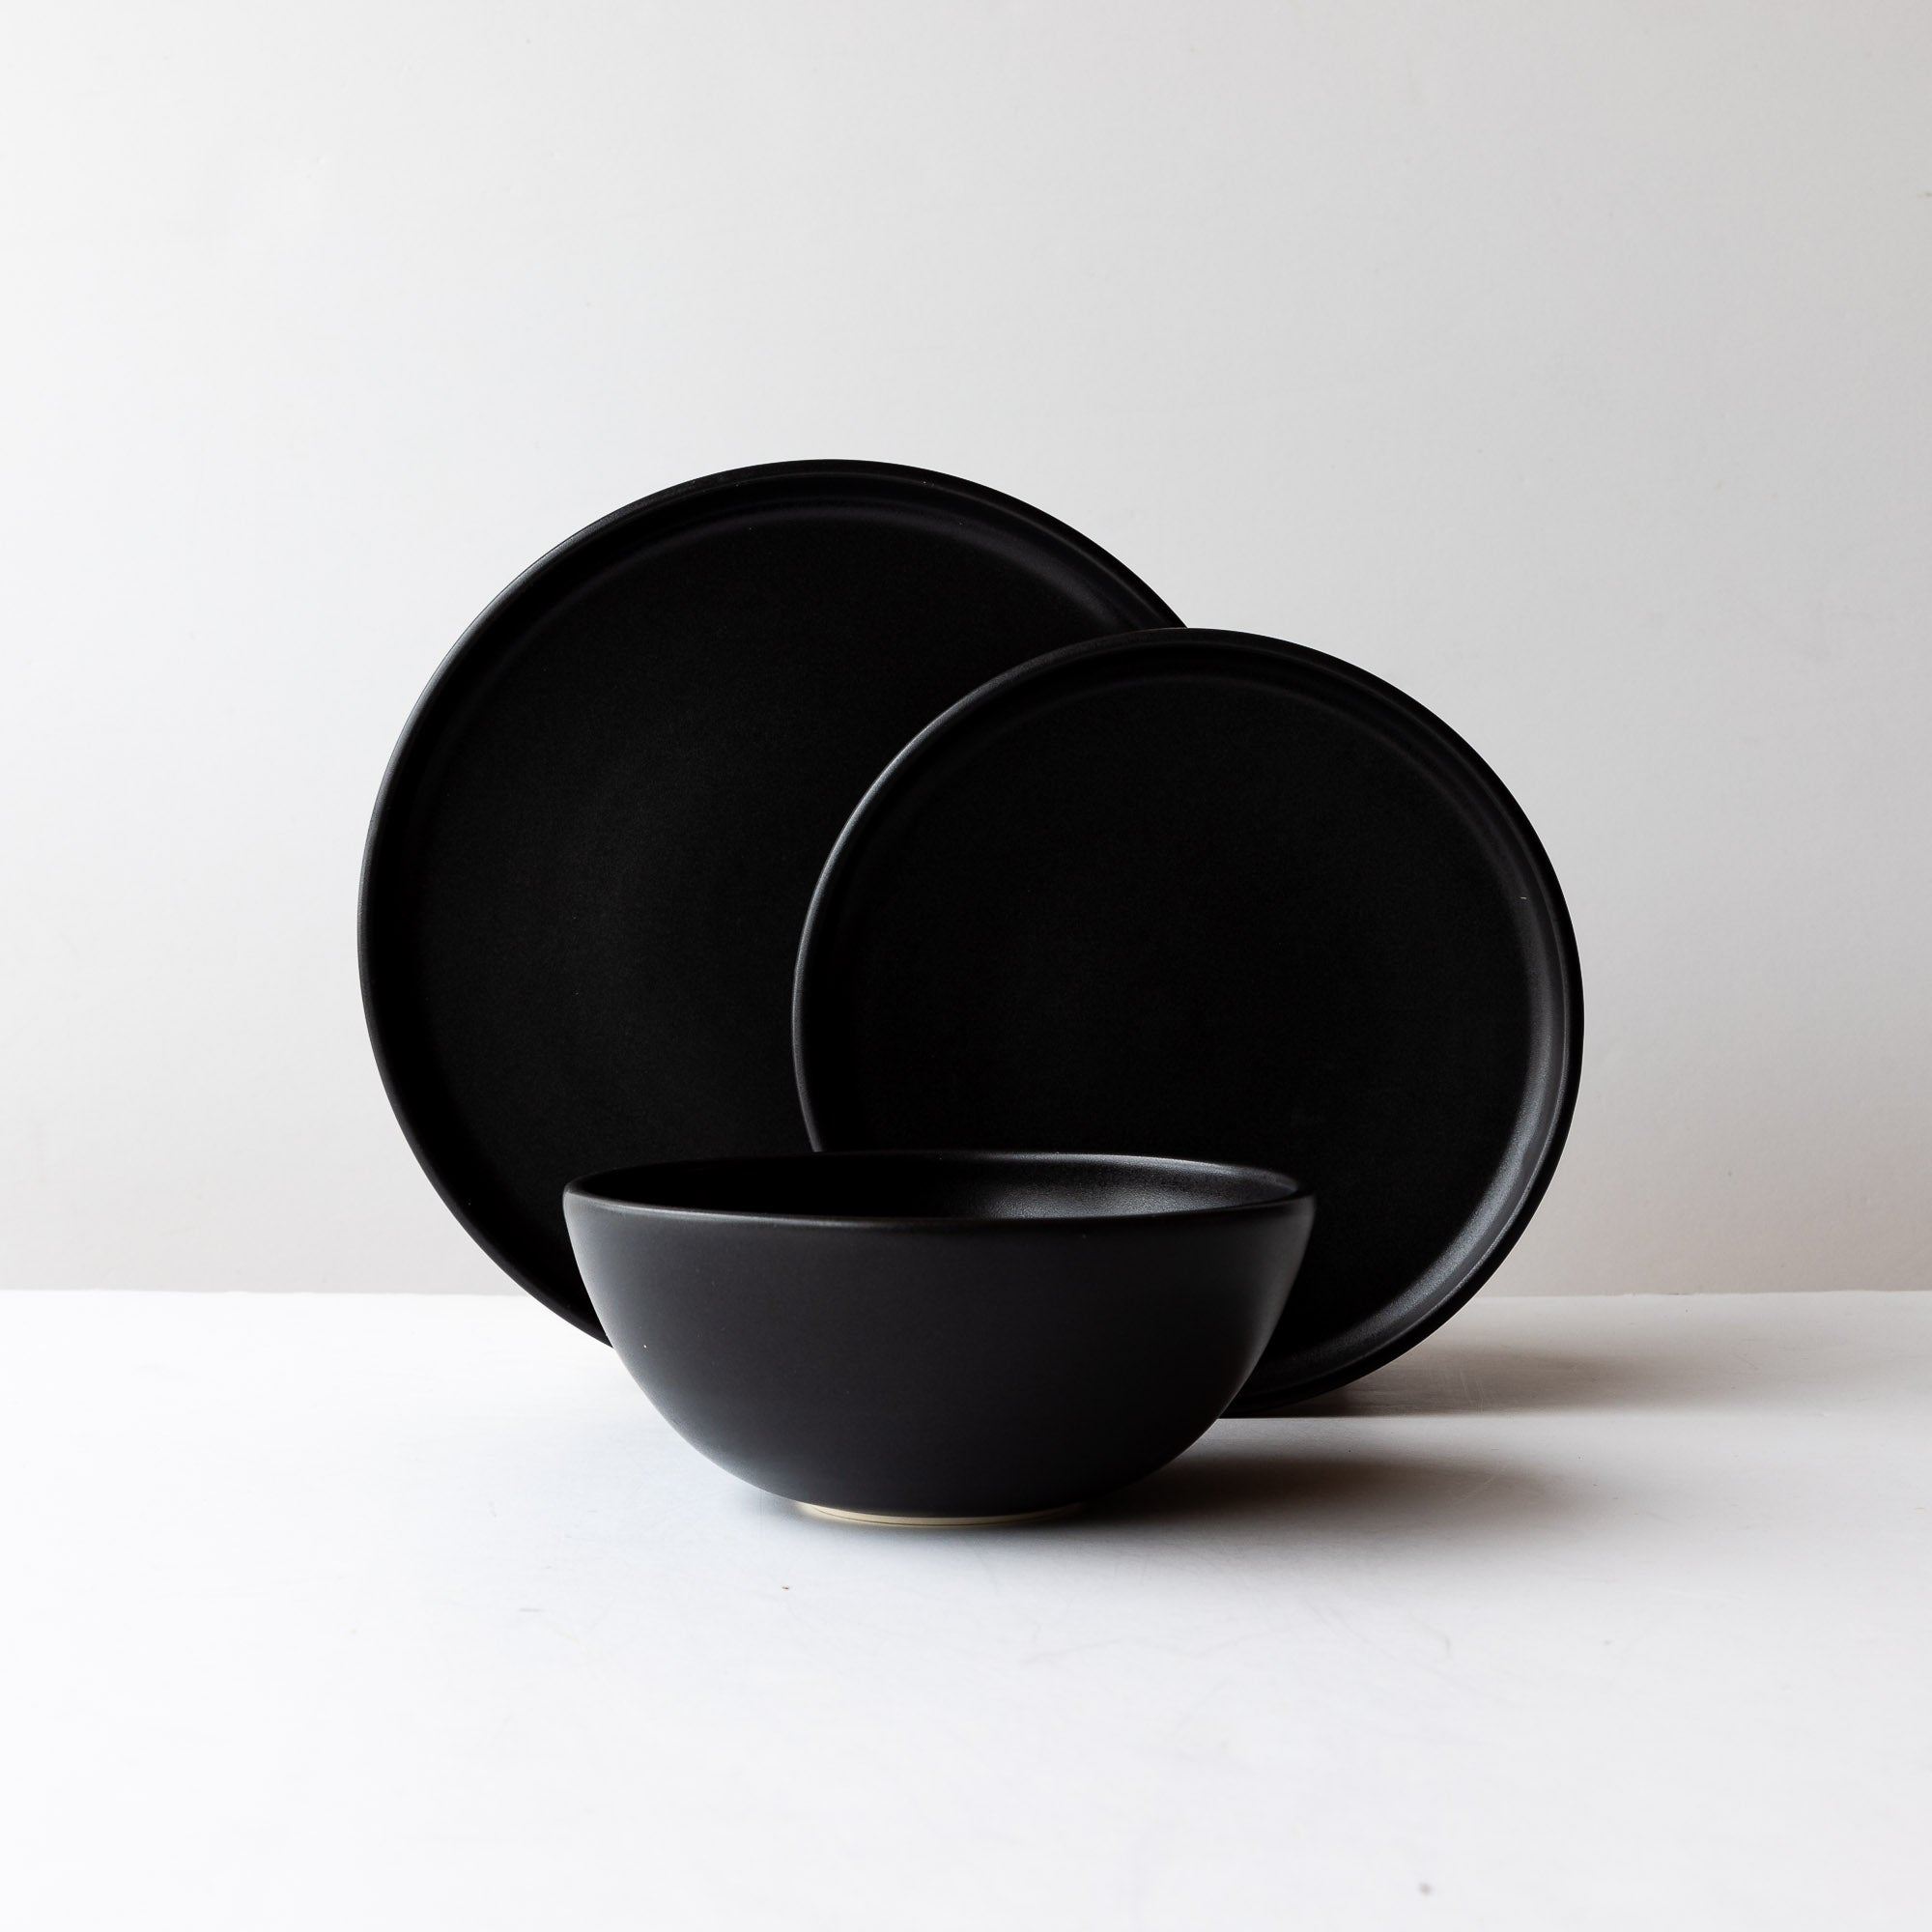 Handcrafted 3 Piece Dinnerware Set in Black Satin Porcelain - Sold by Chic & Basta